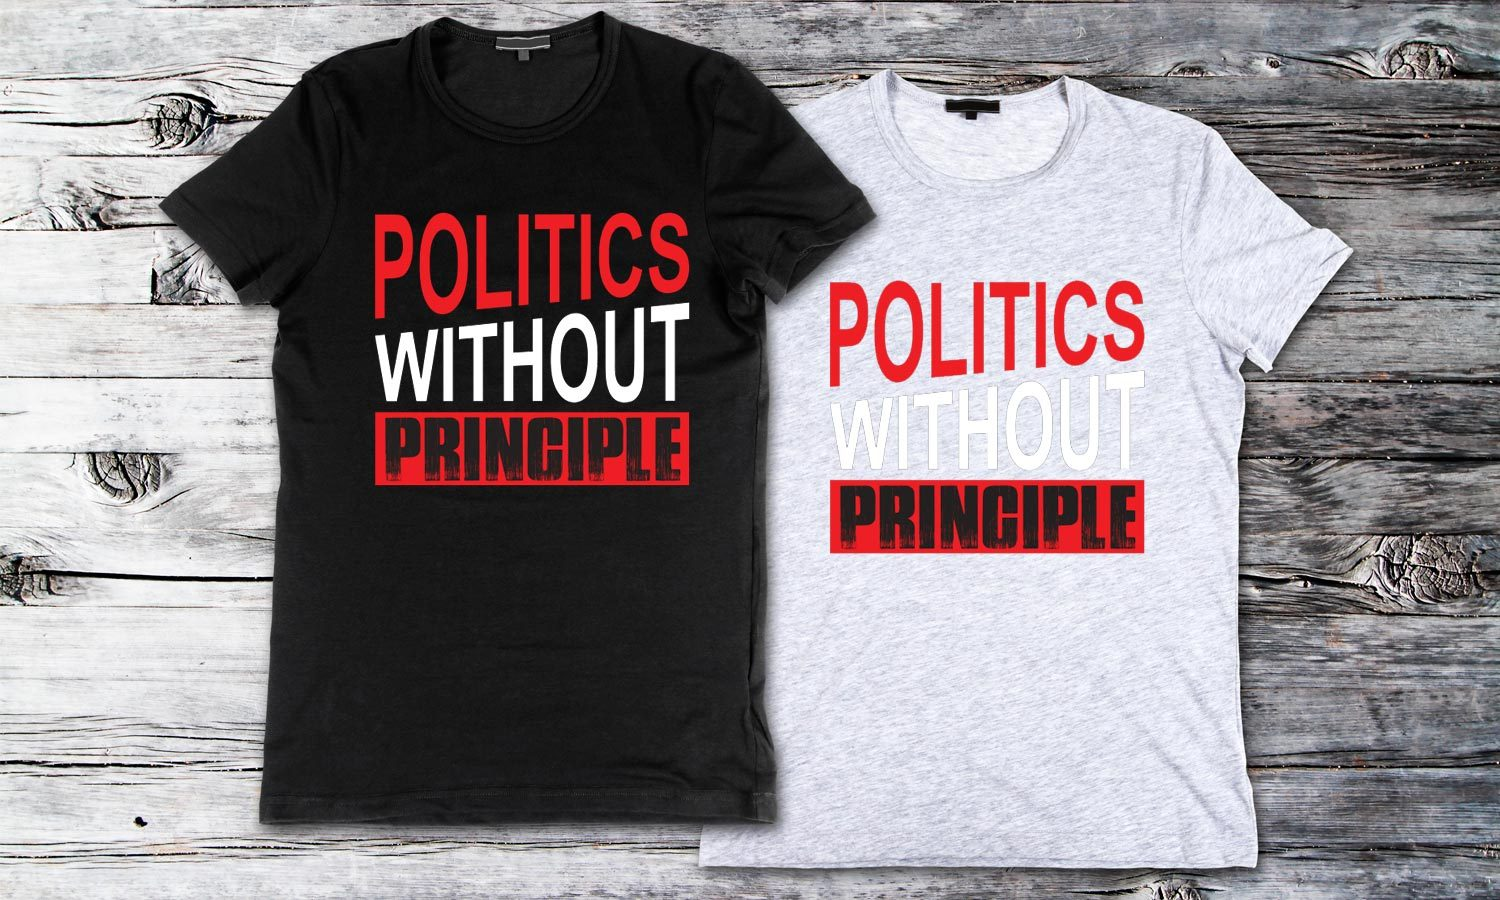 Principle - Printed T-Shirt for Men, Women and Kids - TS200